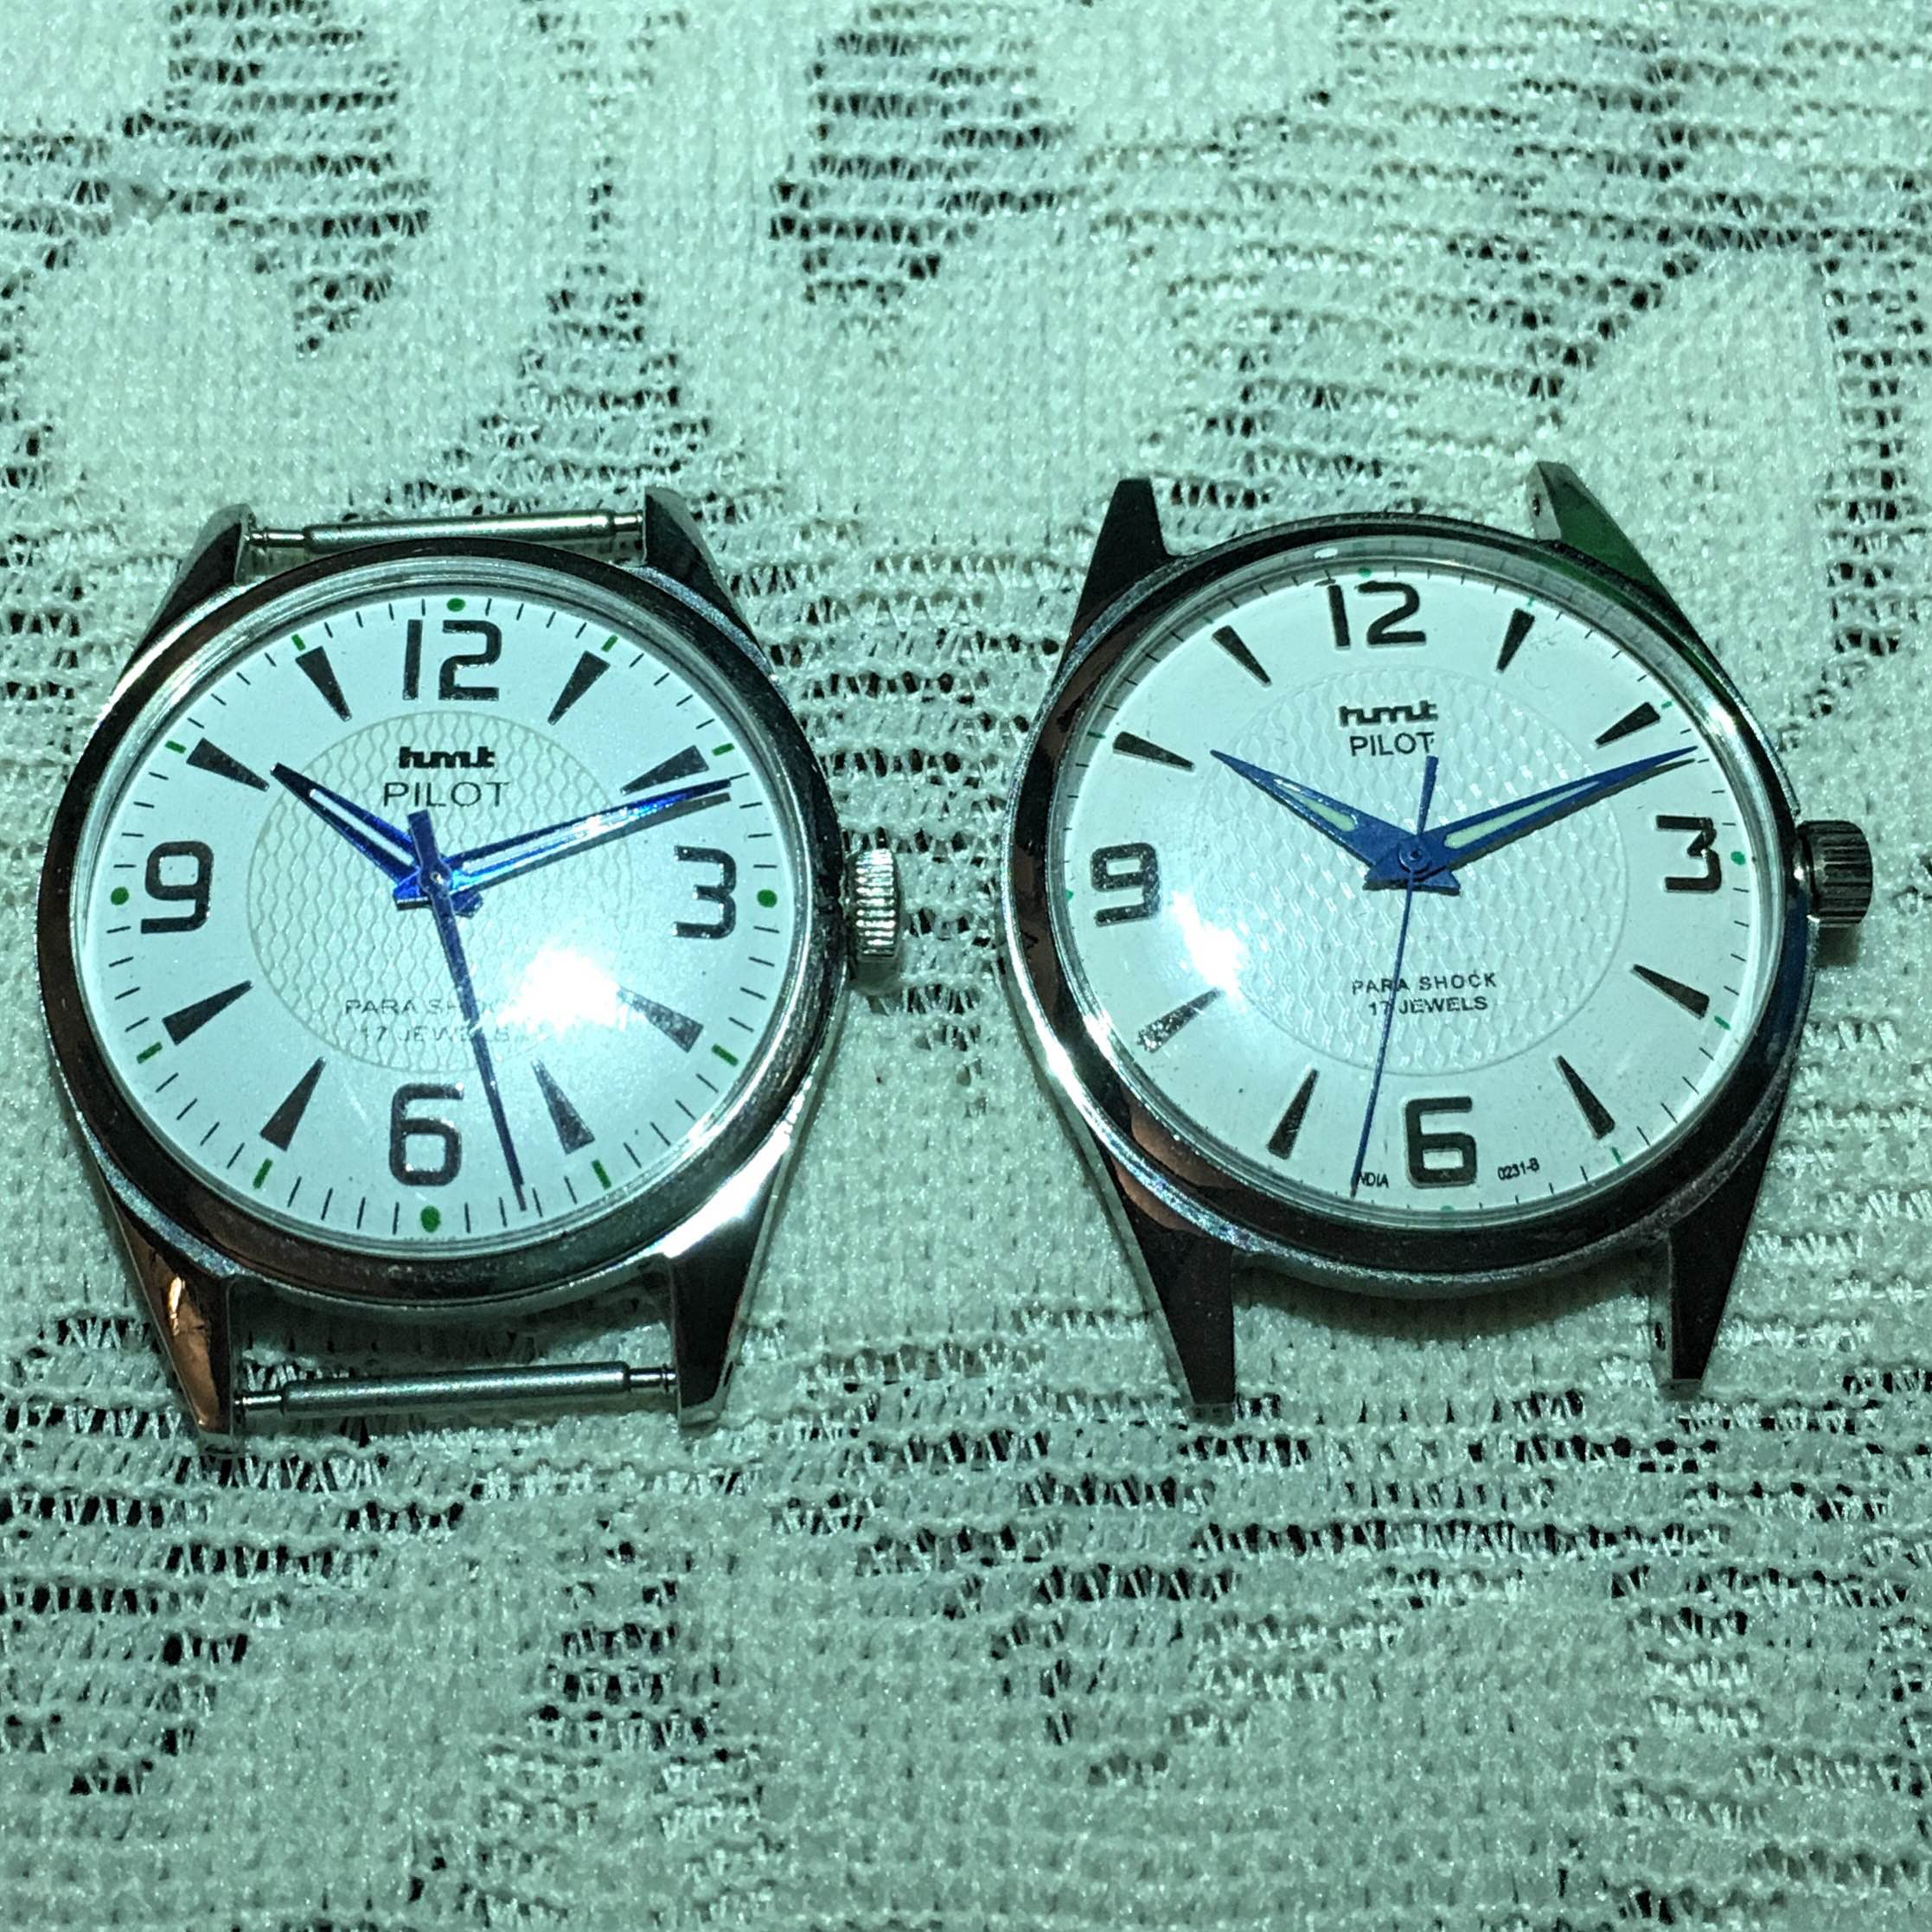 The HMT White Pilot is the most iconic modern HMT. On the left is the fake, with the real thing on the right.